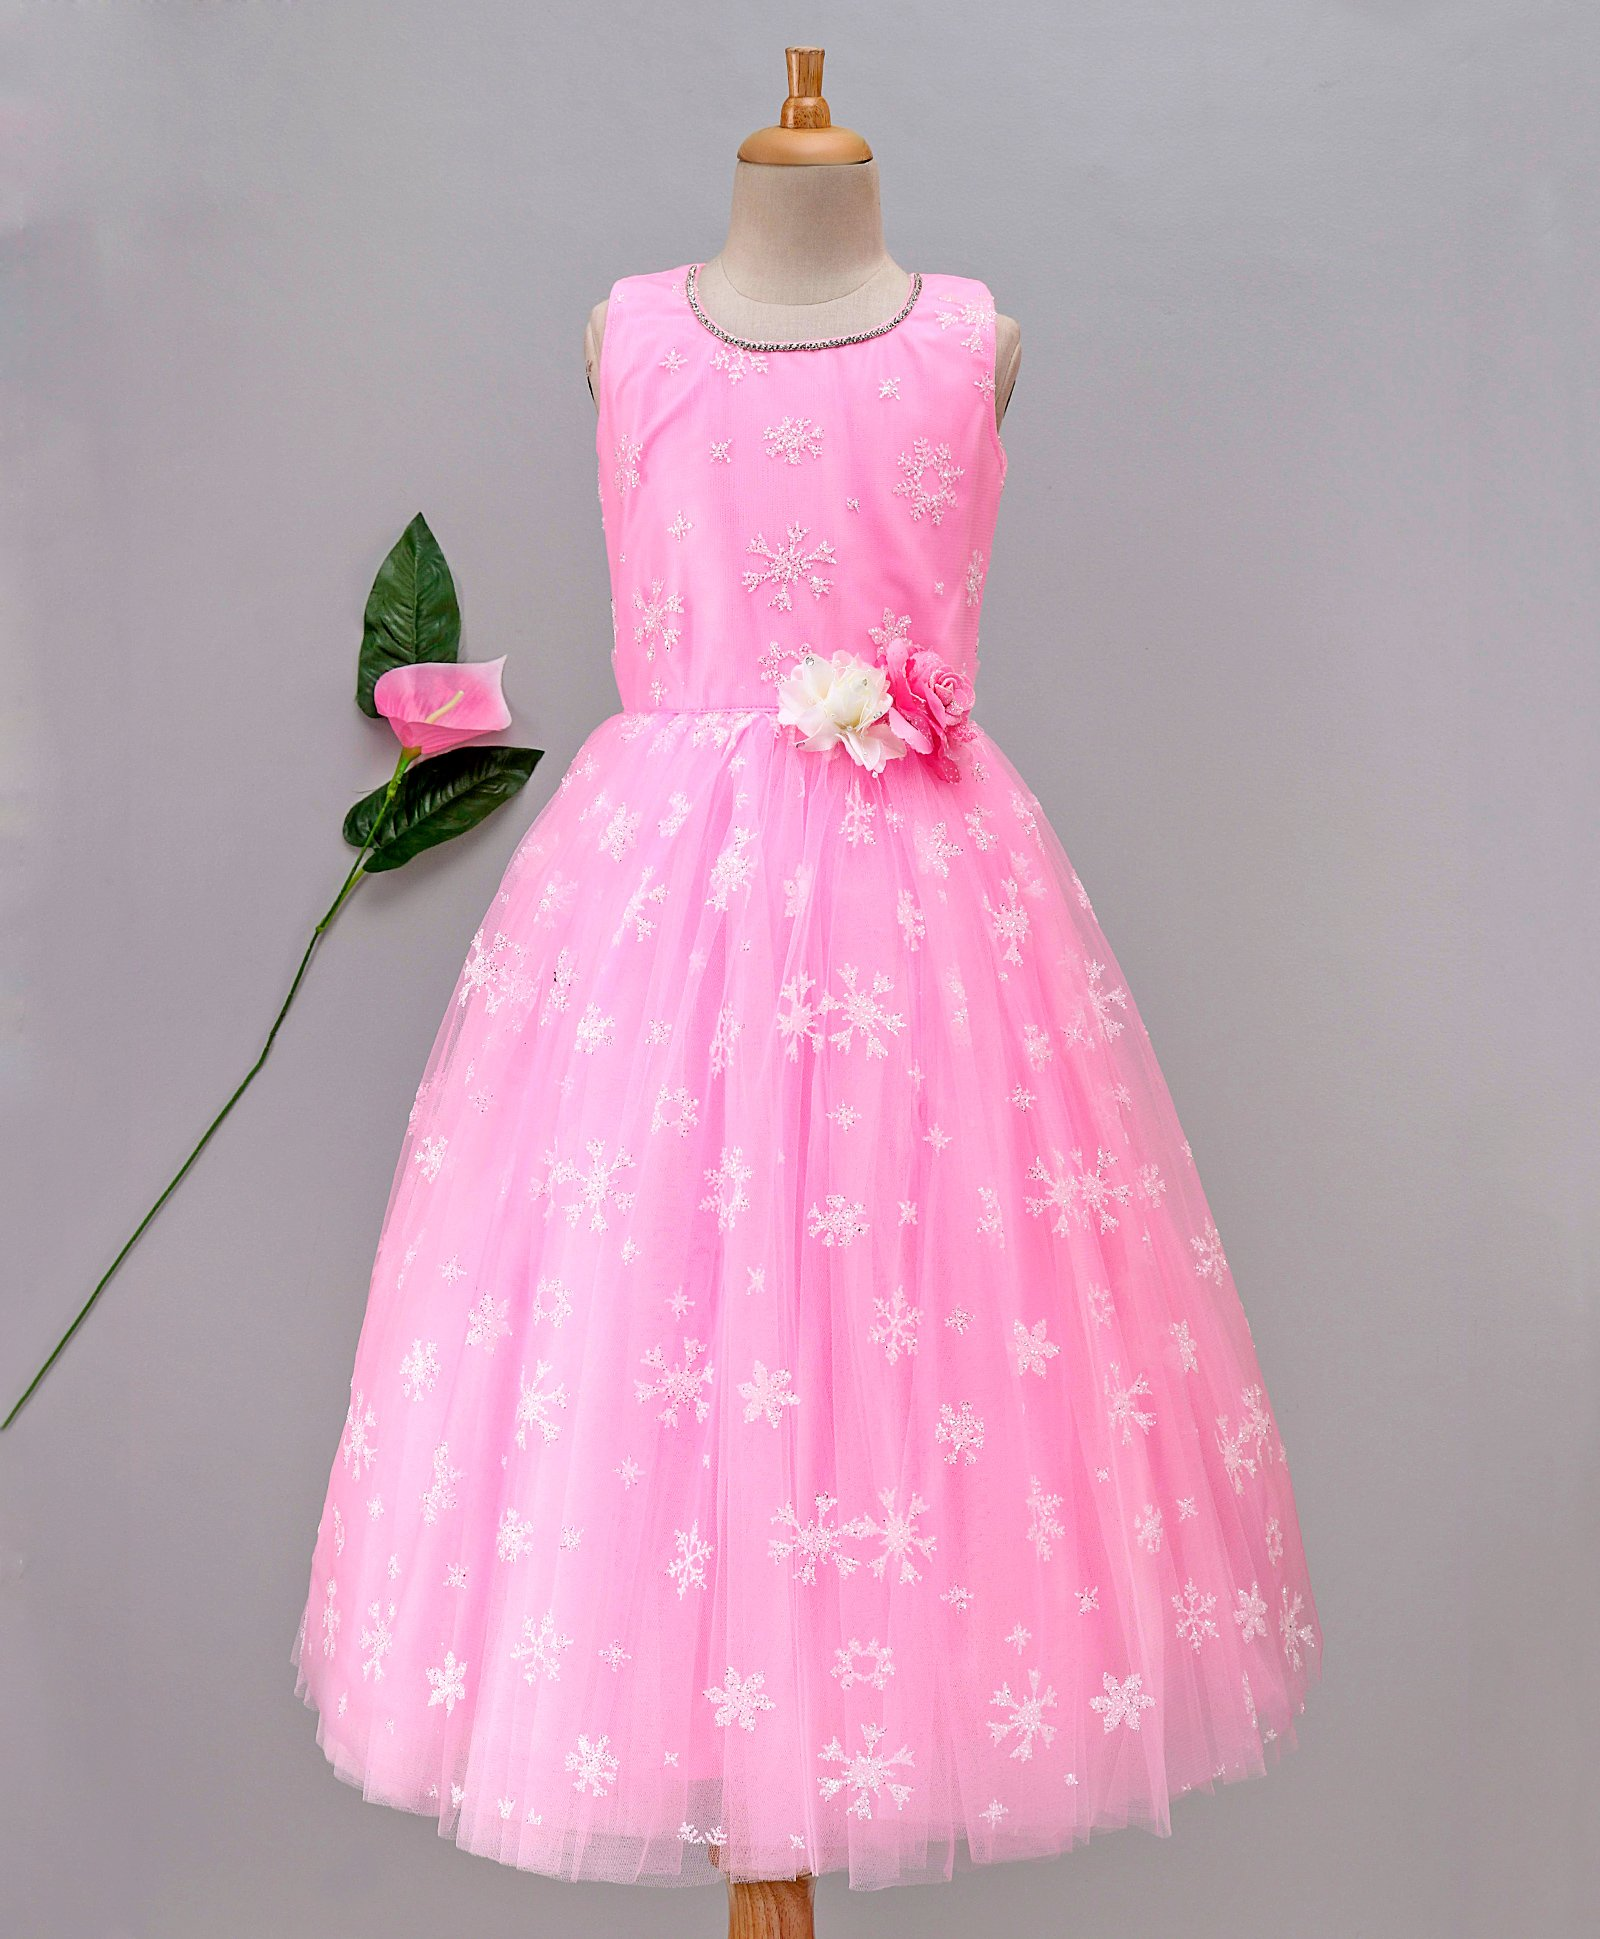 b99a725d341cd Buy Enfance Flower Embellished Sleeveless Net Gown Pink for Girls (7-8  Years) Online in India, Shop at FirstCry.com - 2320865